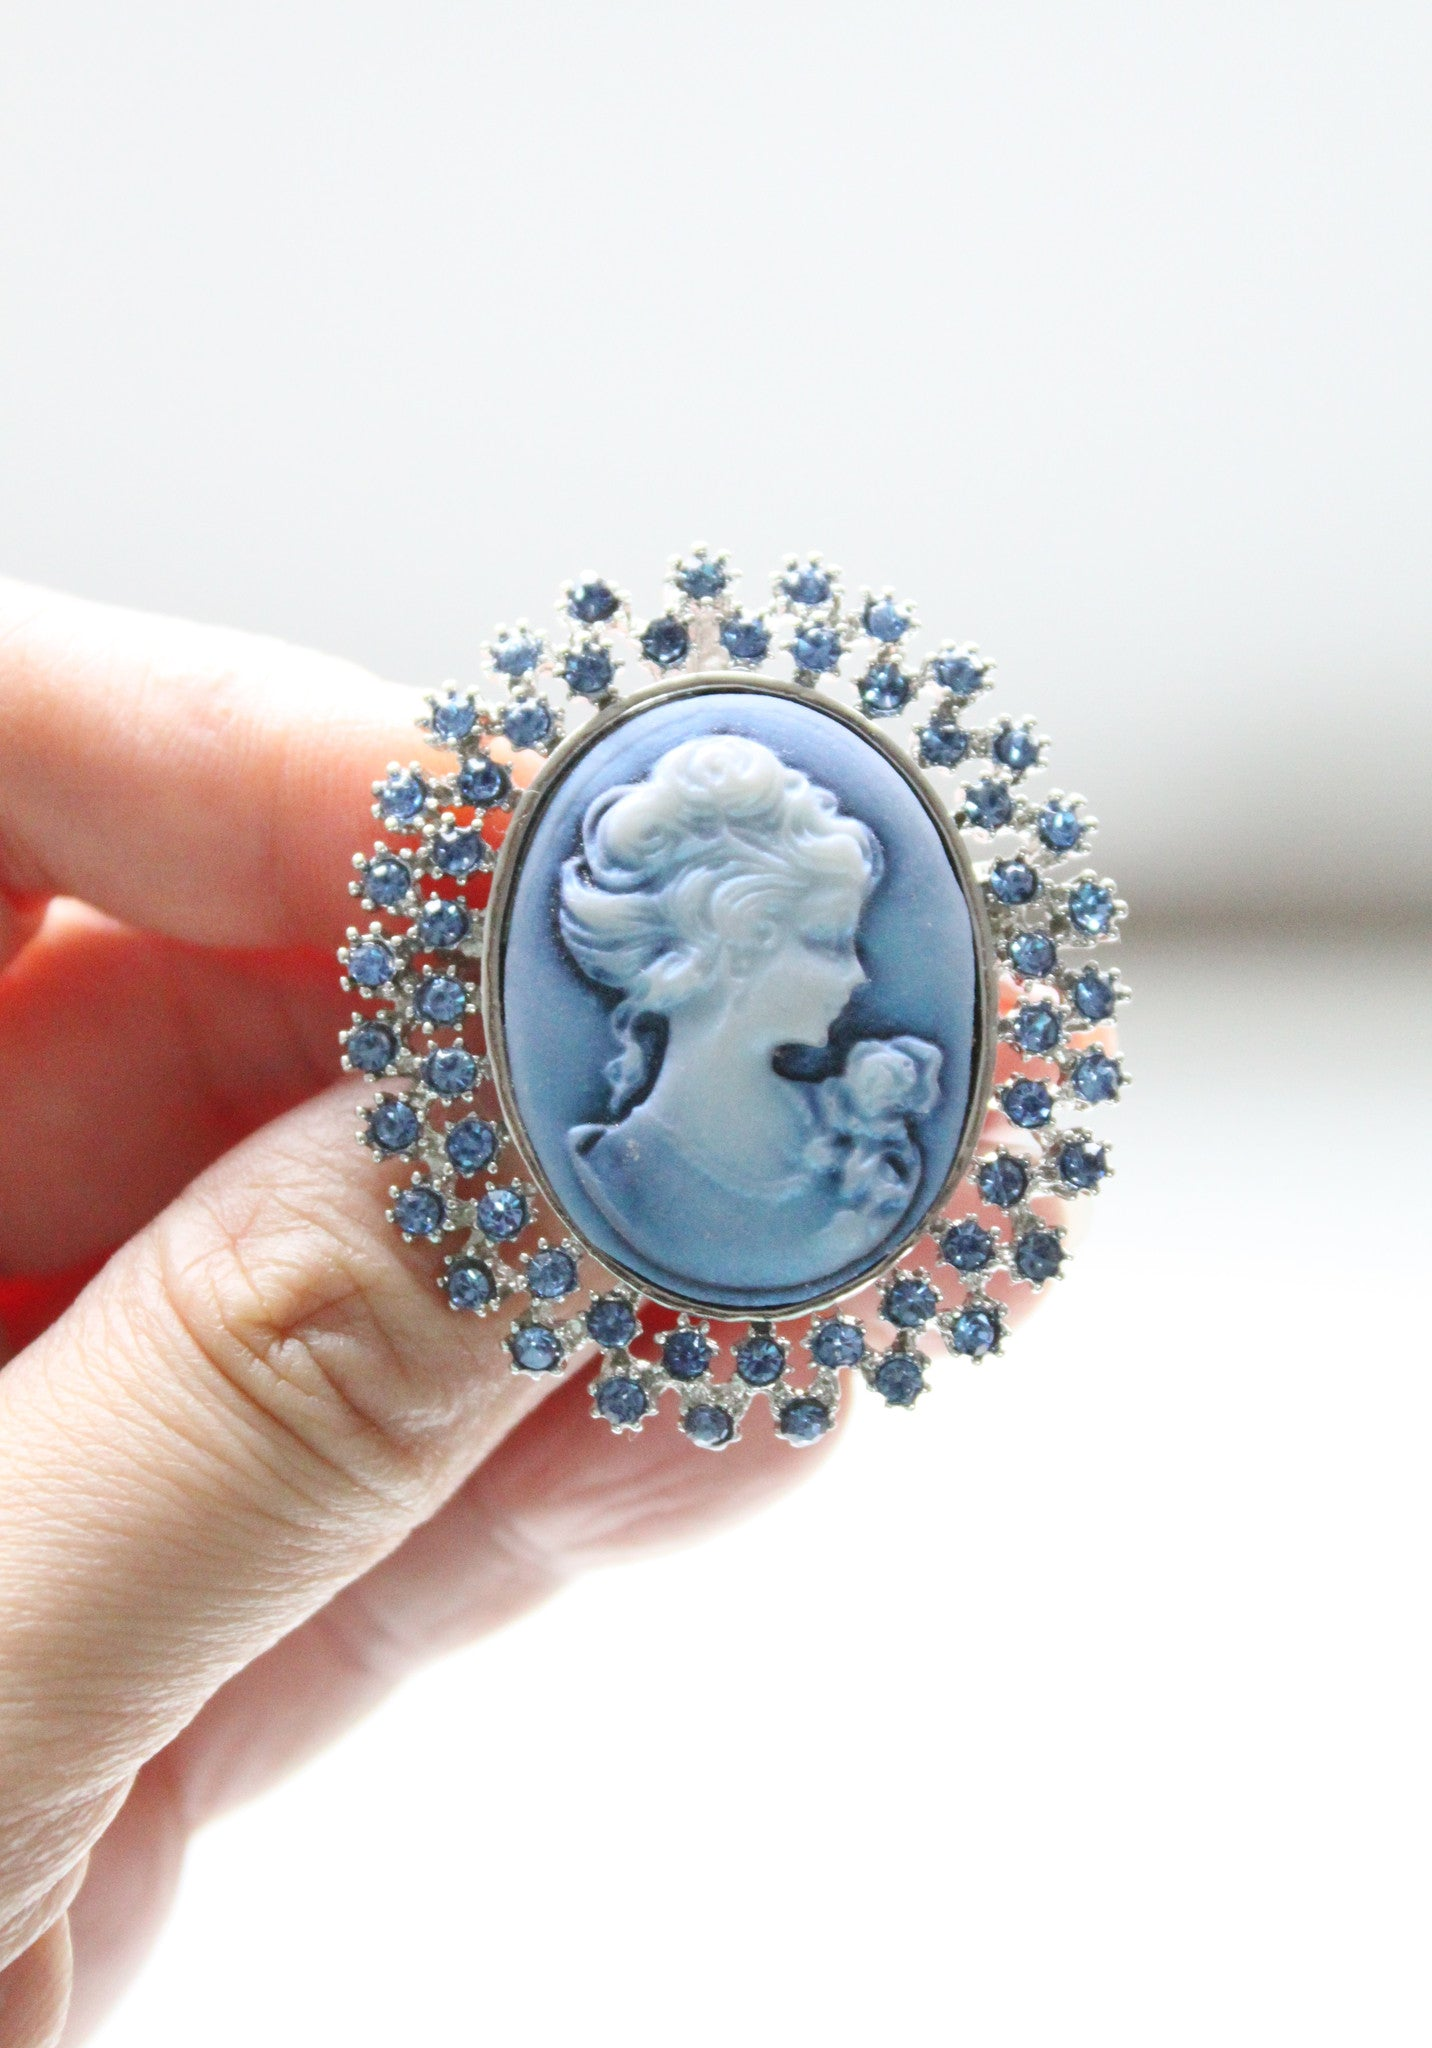 1950s Something Blue Gibson Girl Cameo Rhinestone Brooch / Pendant